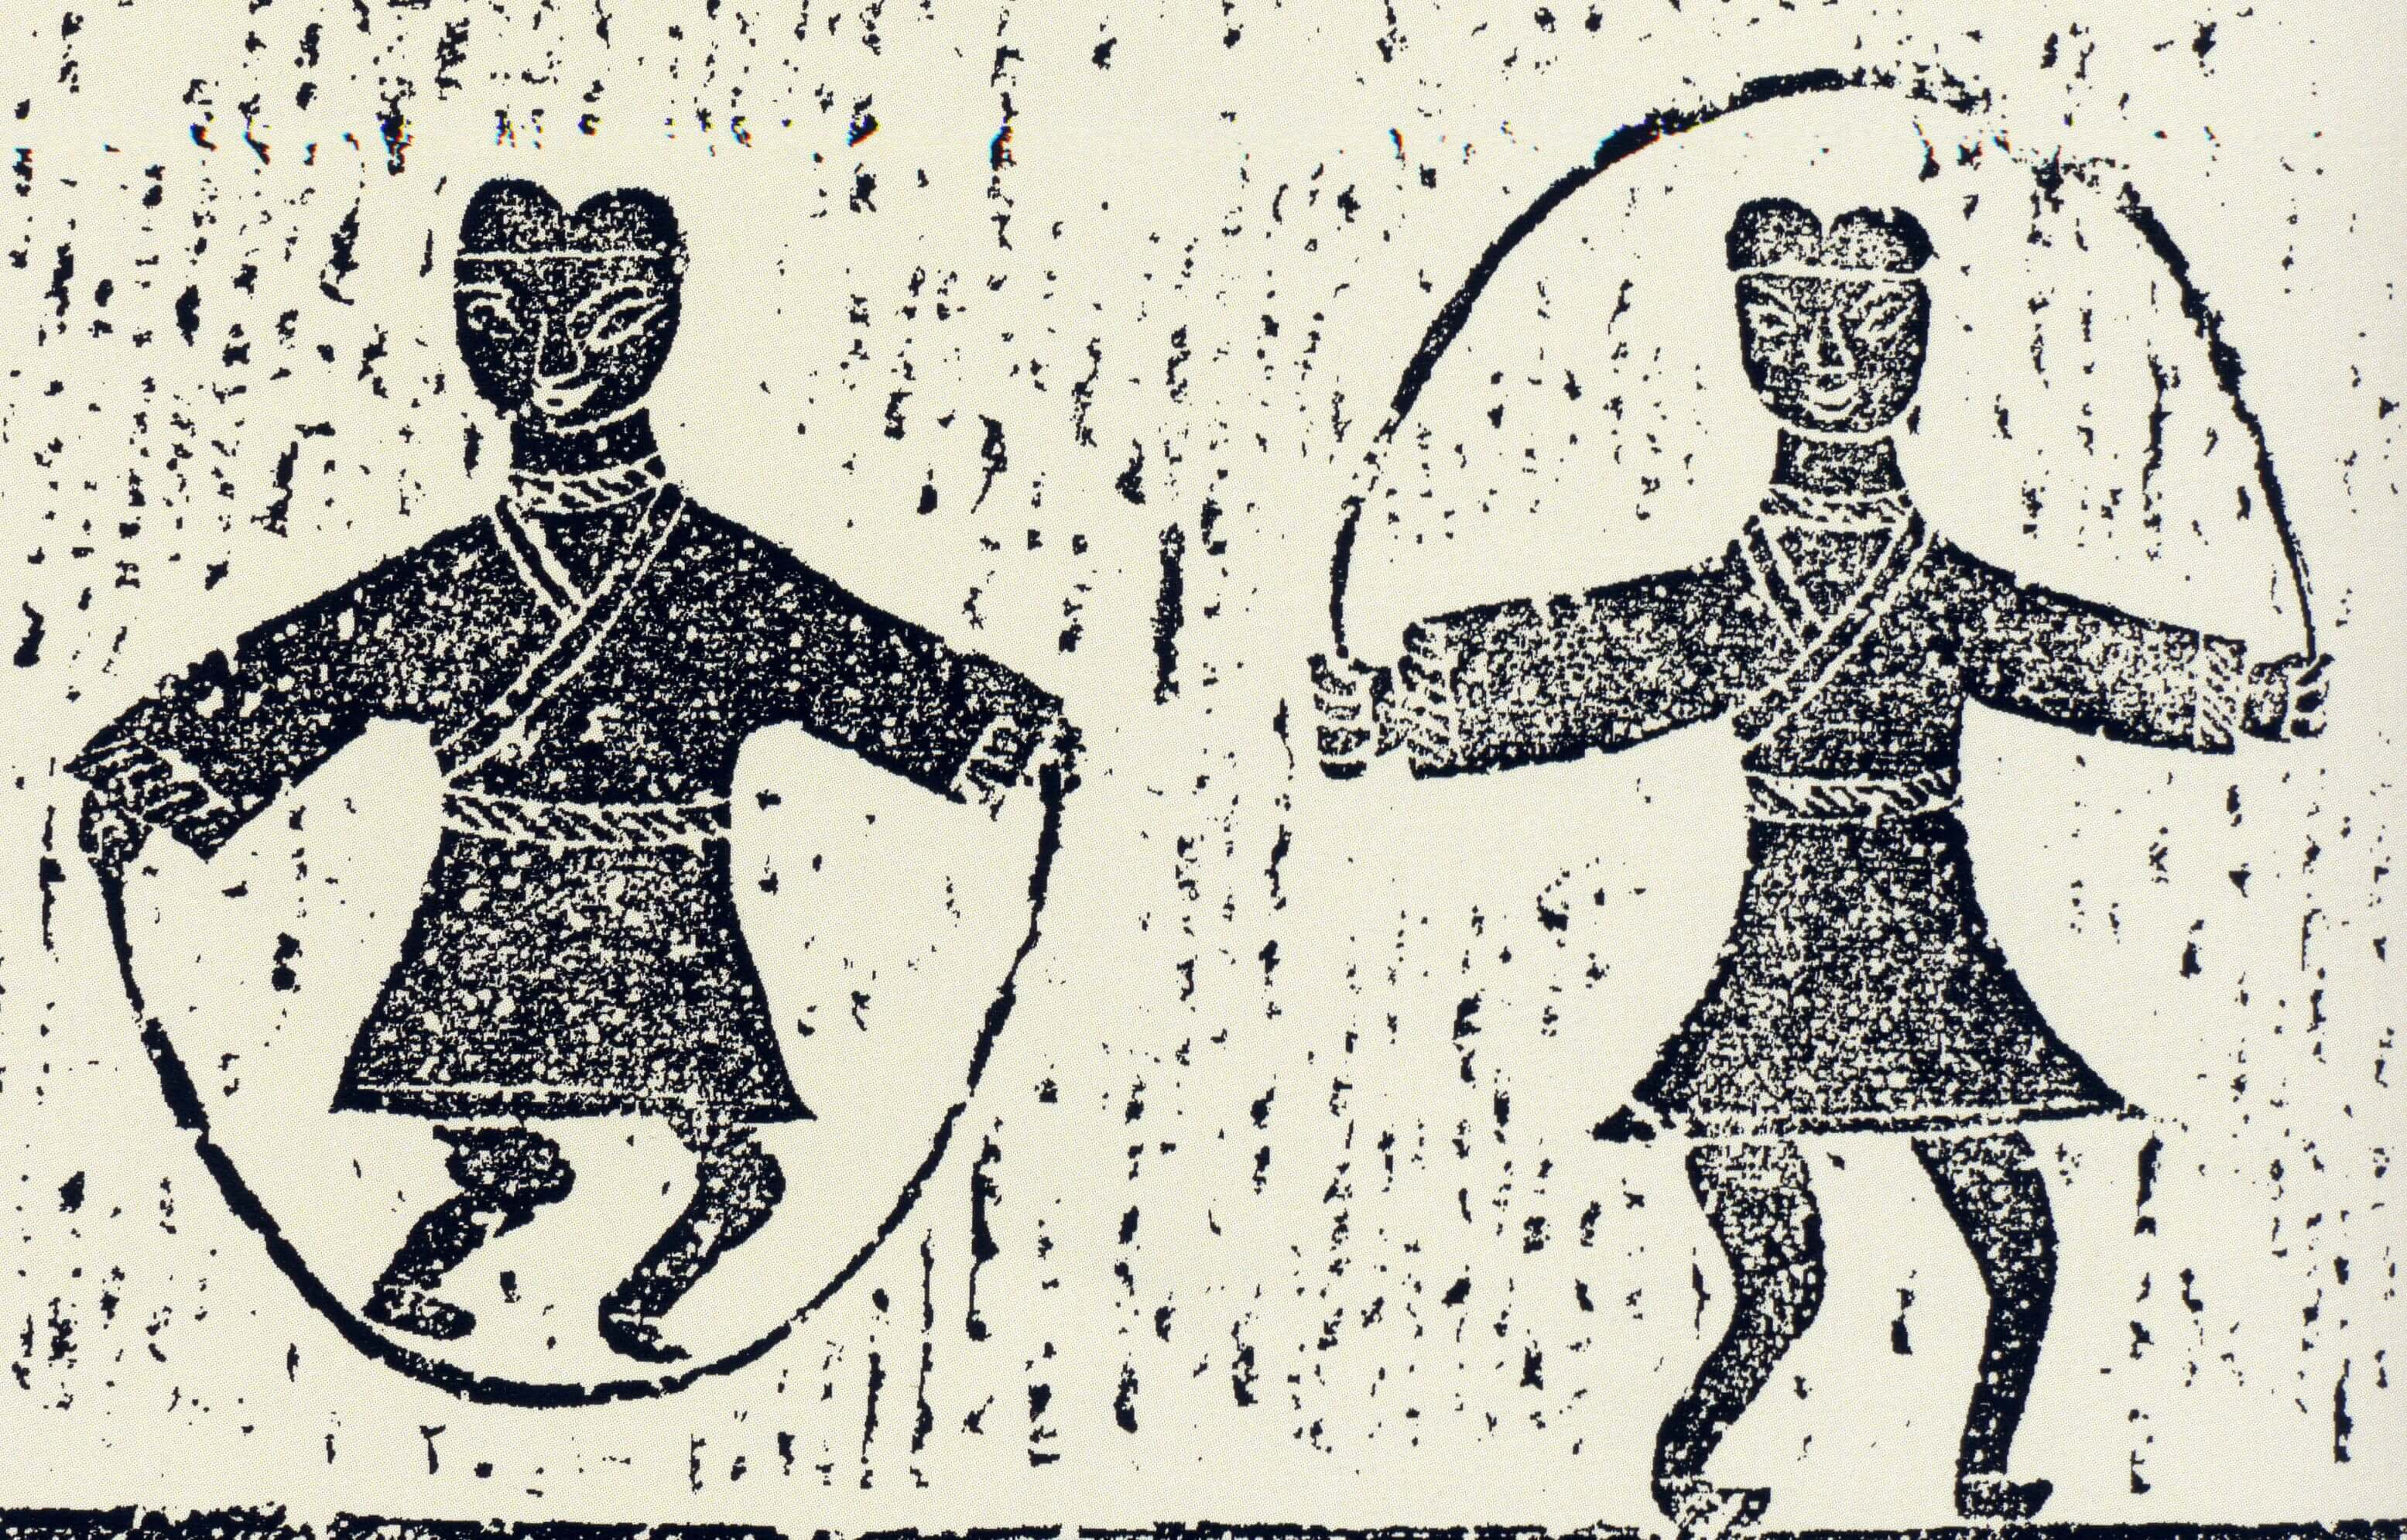 Part of a Mural from Chinese Han Dynasty Depicting the Activity of Rope Skipping. Looking for an Effective Cardio Home Workout? Try Rope Jumping! | Hummingbird